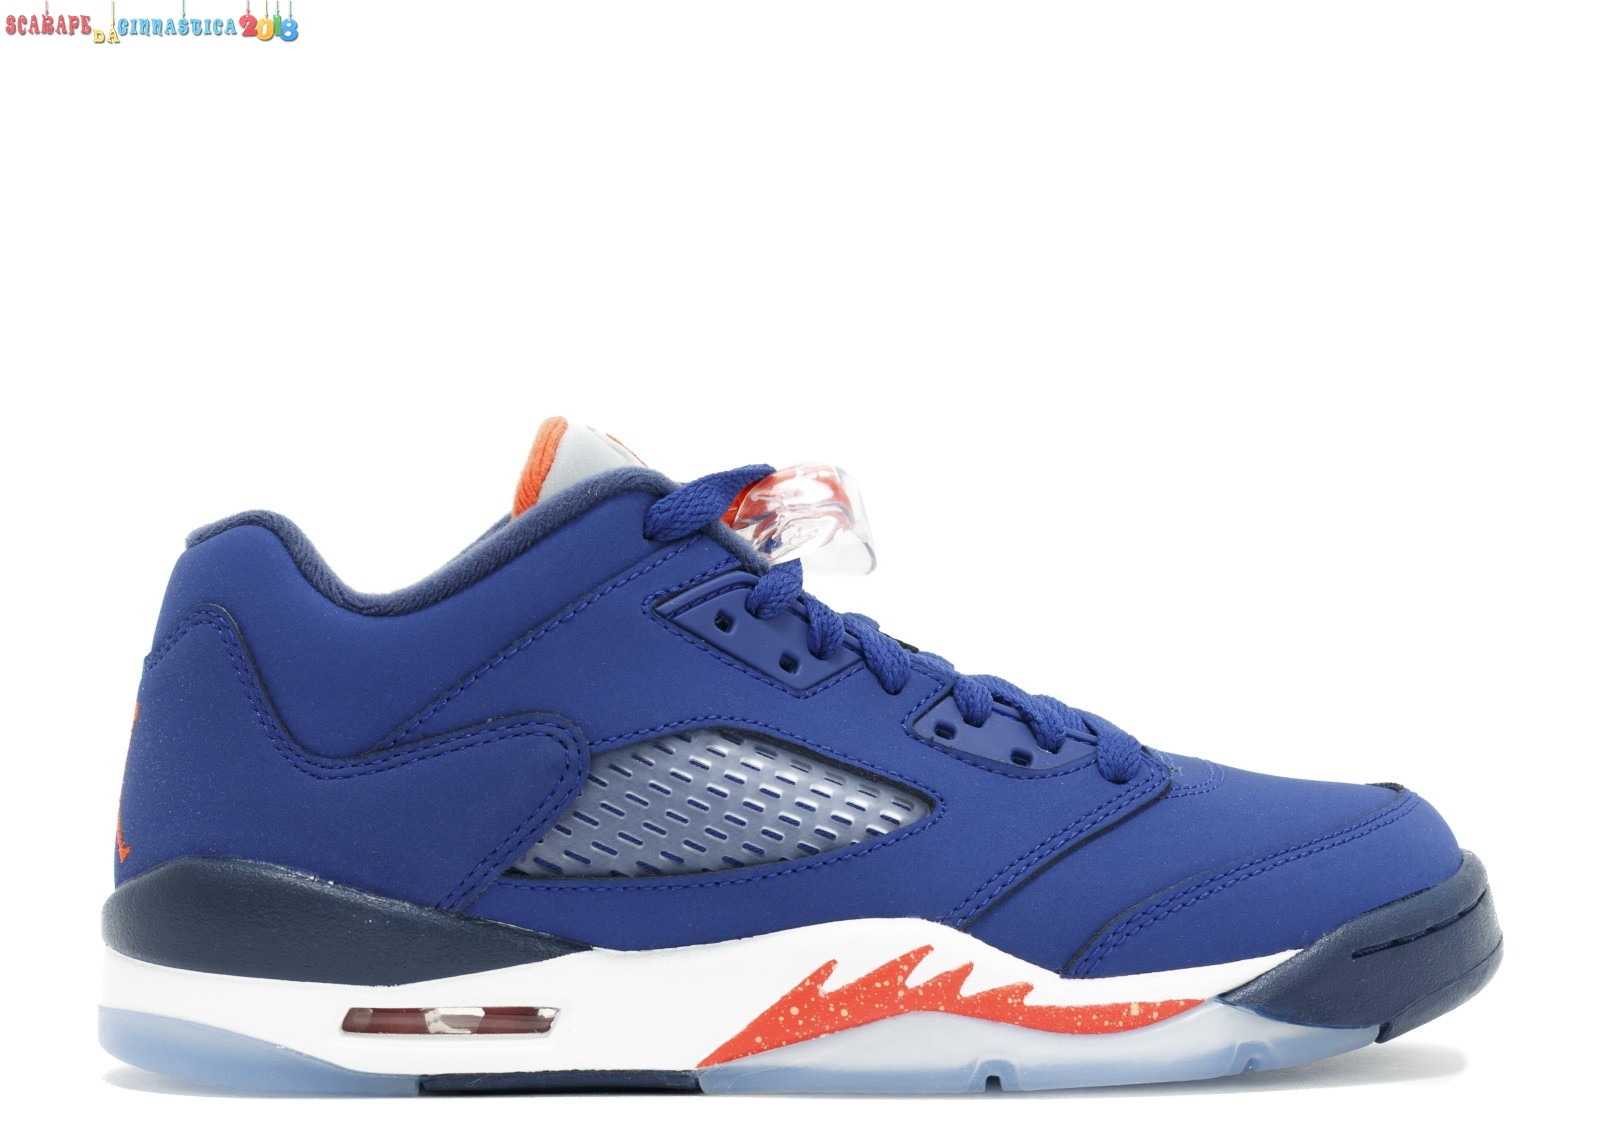 "Replica Air Jordan 5 Retro Low (Gs) ""Knicks"" Blu Arancia (314338-417) - Scarpe da basket"